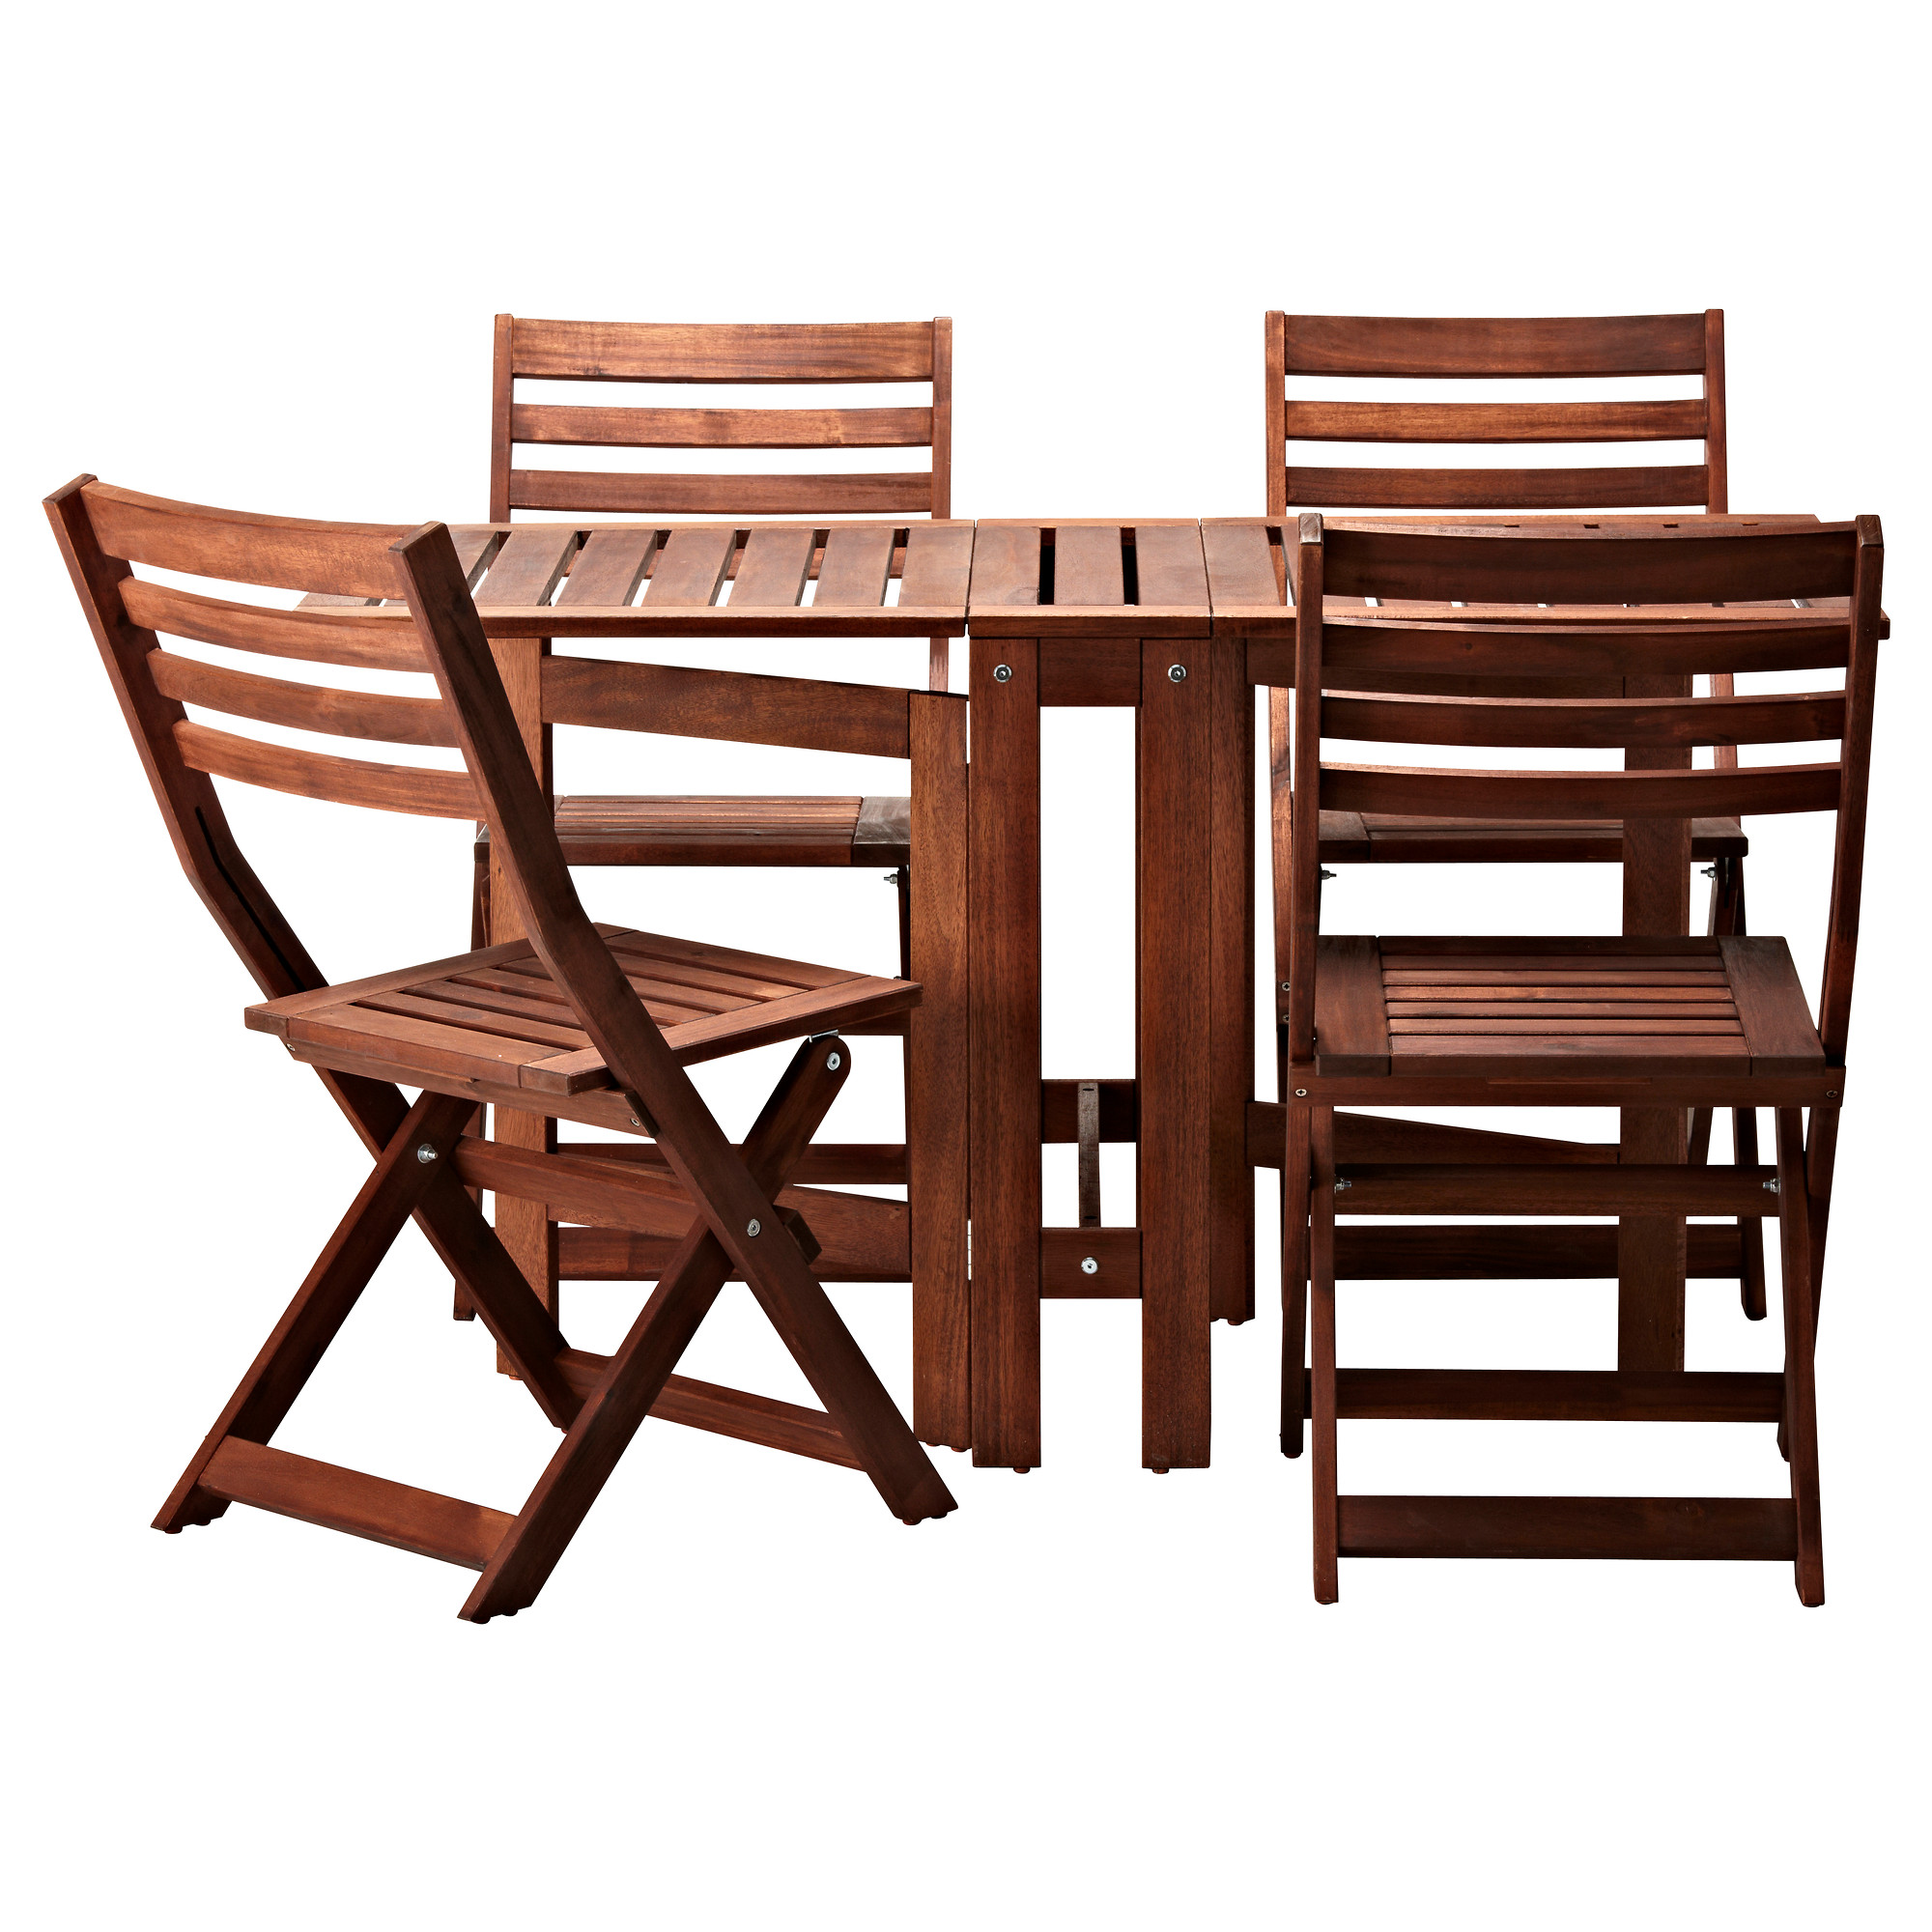 ikea bistro set made of woodebn with drop leave tables and four stunning folding chairs  sc 1 st  HomesFeed & Get a Nice Spot in Your Garden or Patio by Decorating an IKEA Bistro ...